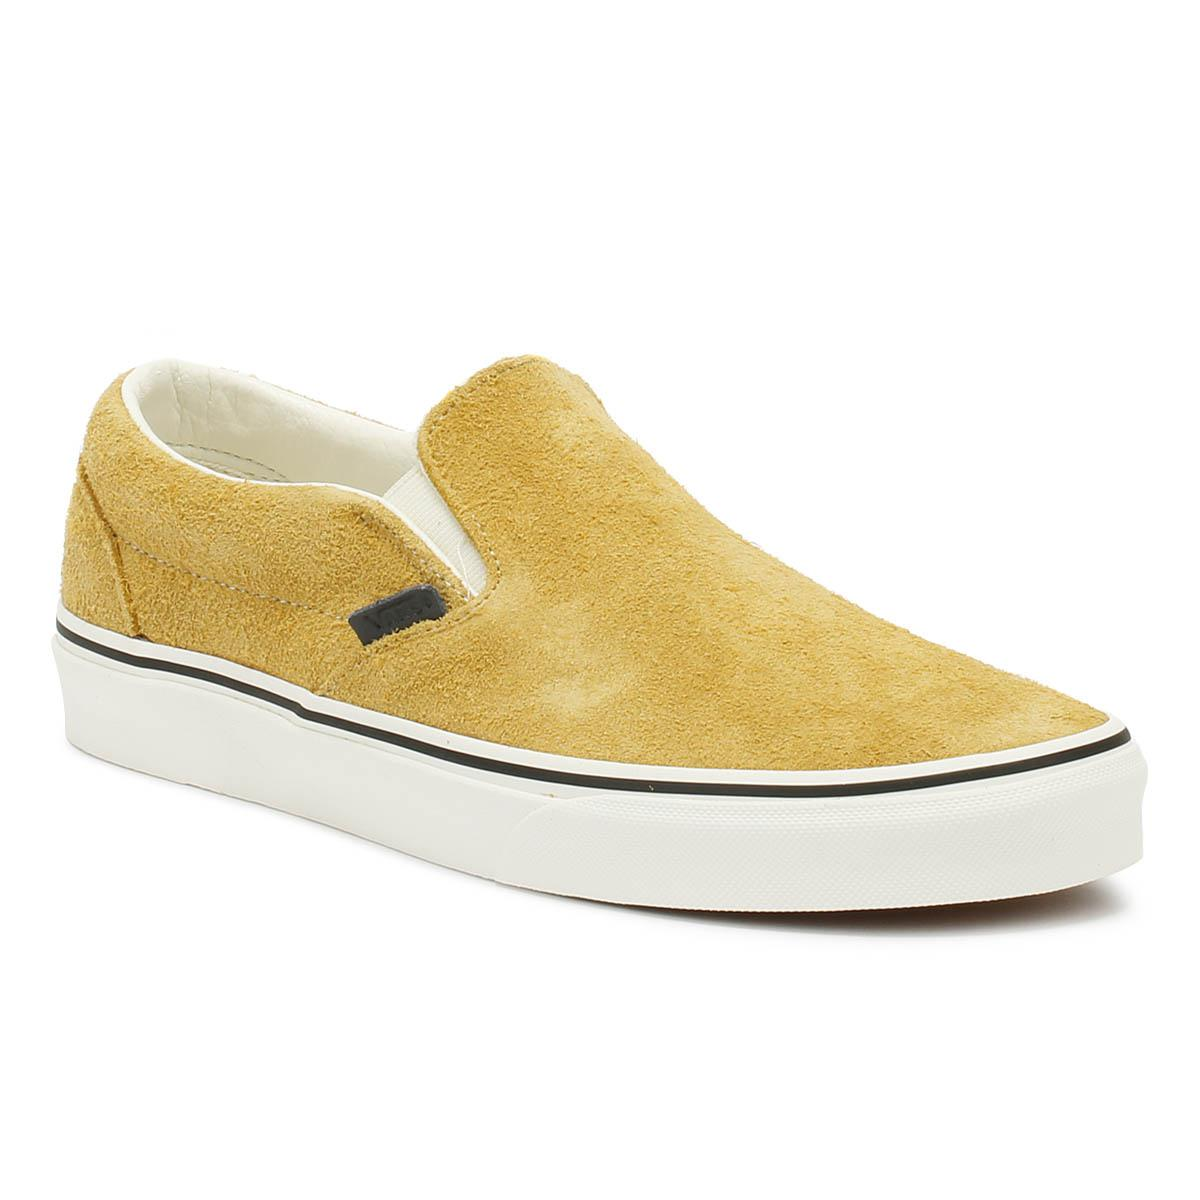 25fcb47c6e6 Vans. Natural Classic Slip On Hairy Suede Mens Sunflower Beige Trainers